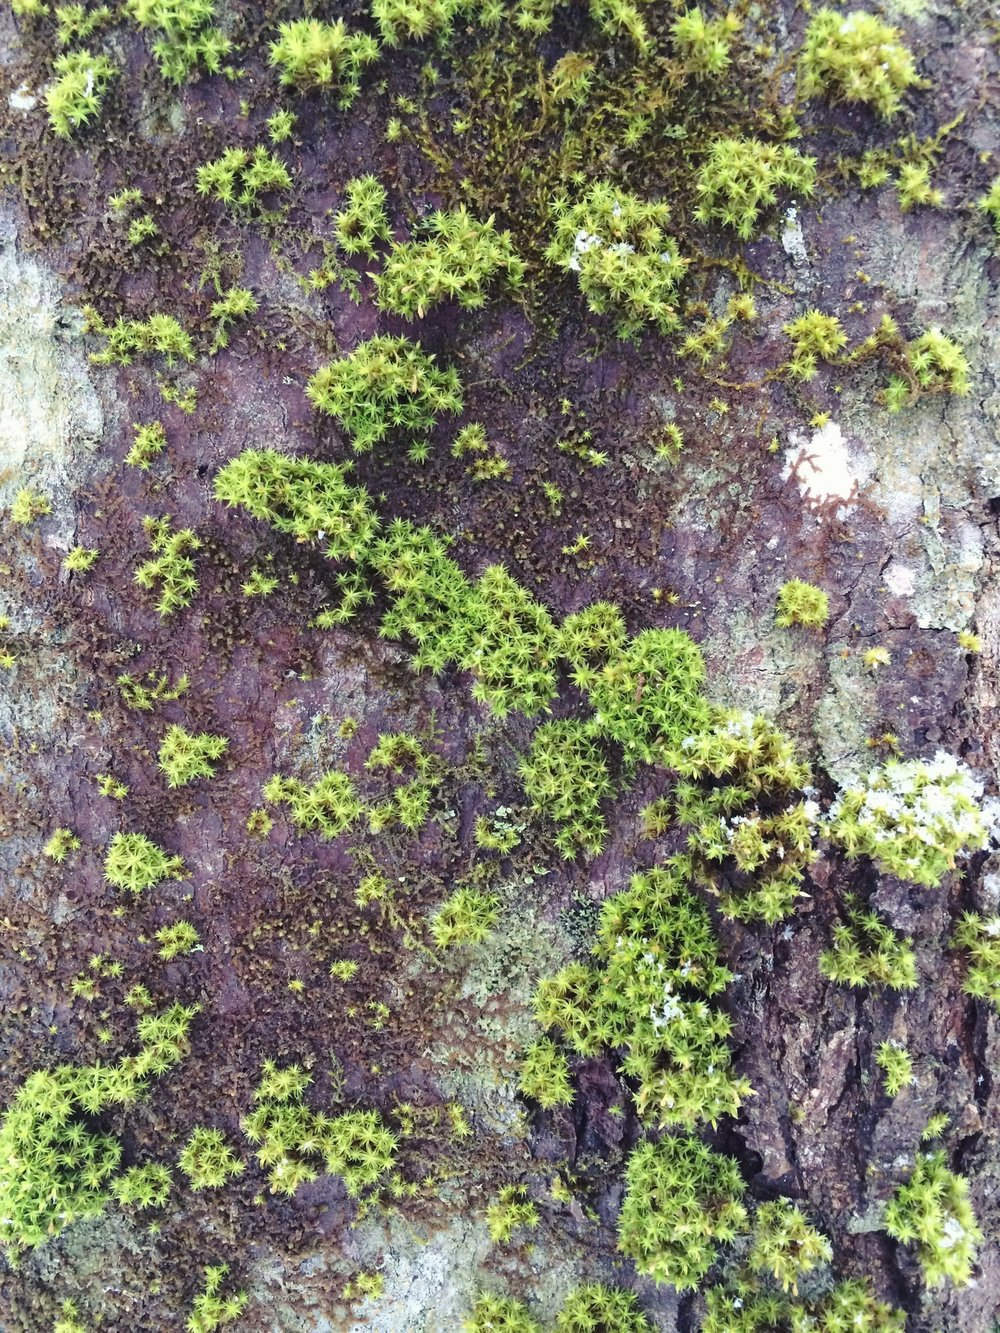 Live Like A Lichen—Lily Myers